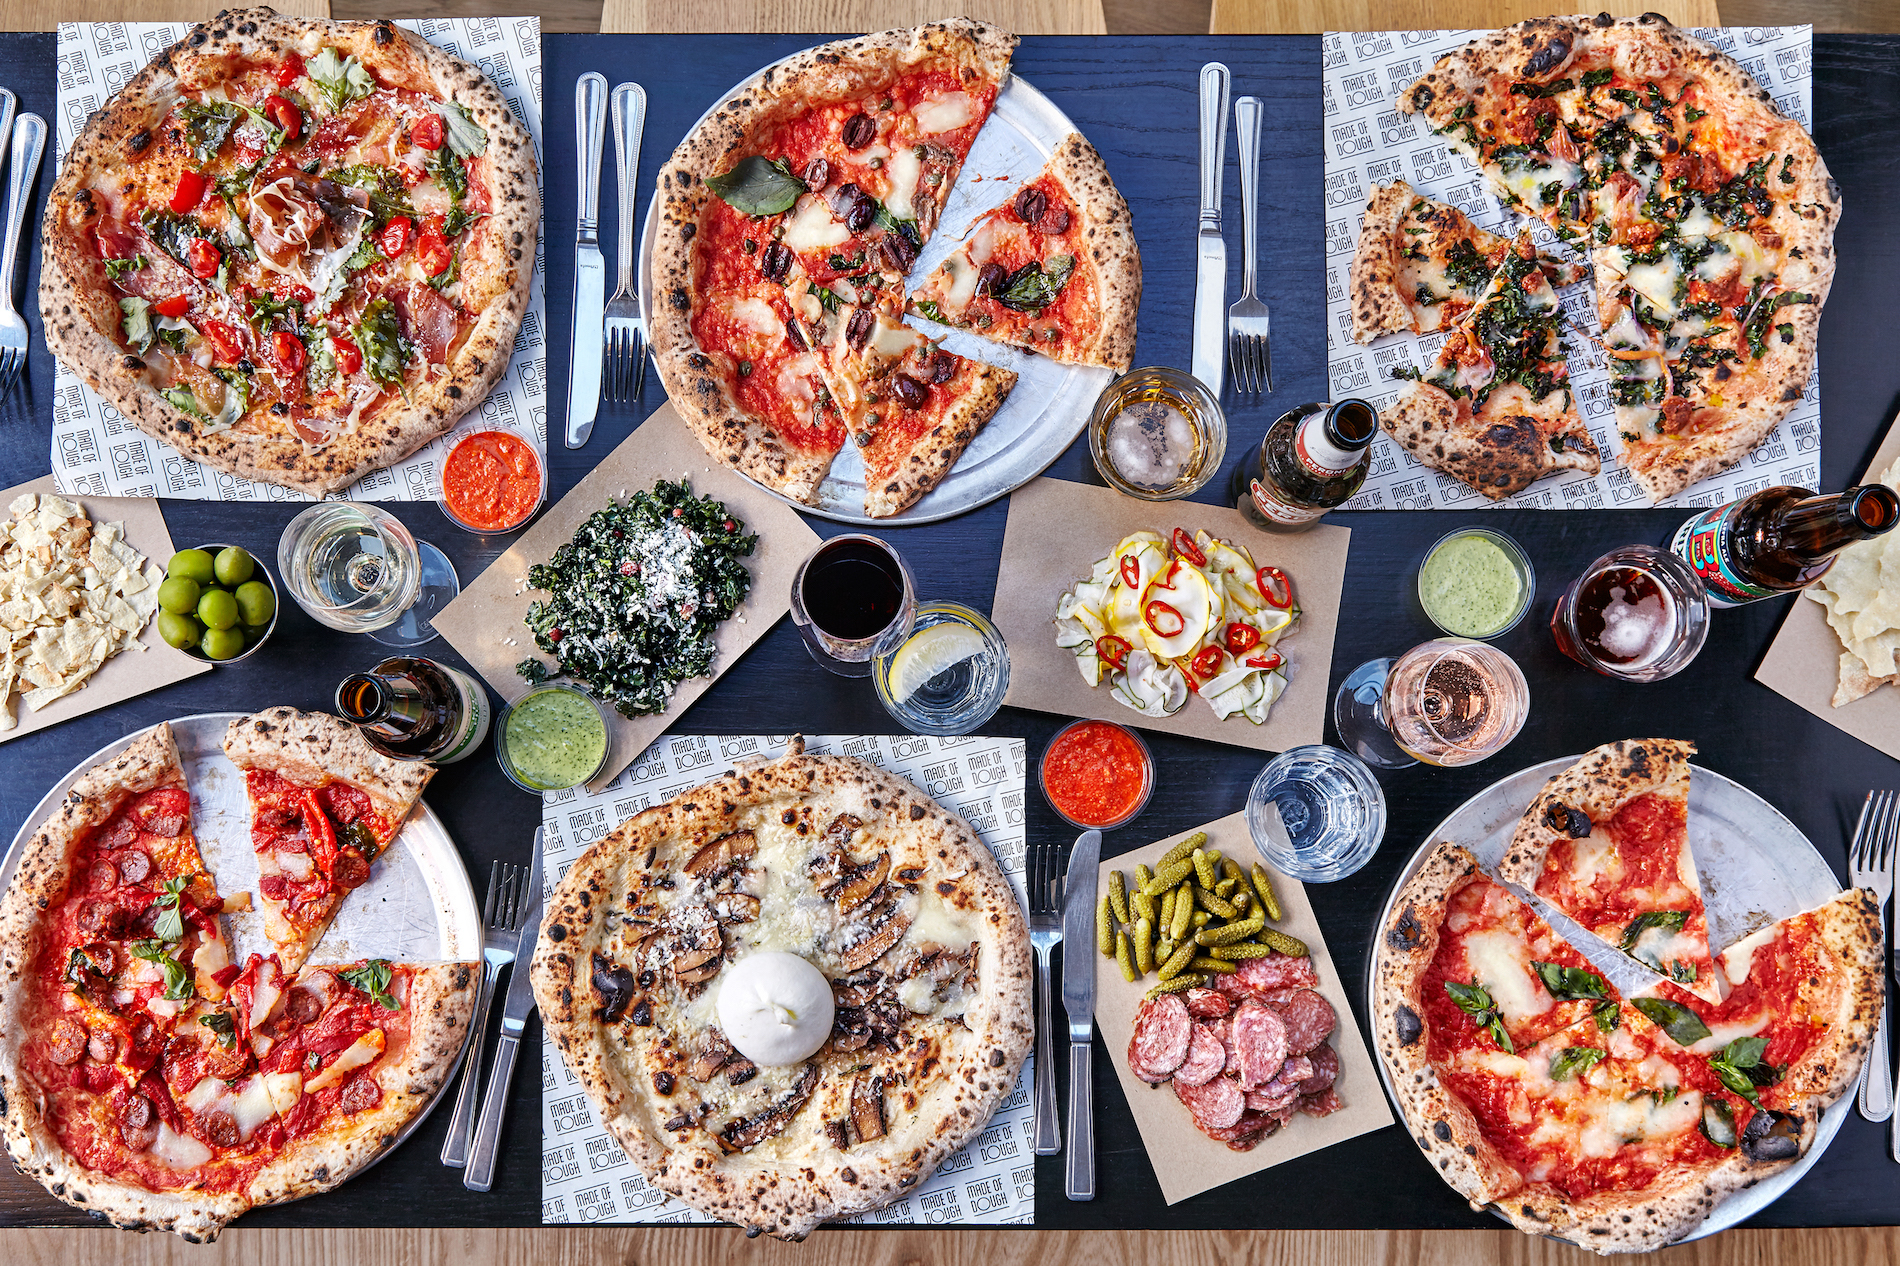 Eat all the pizza for £20 at this epic battle